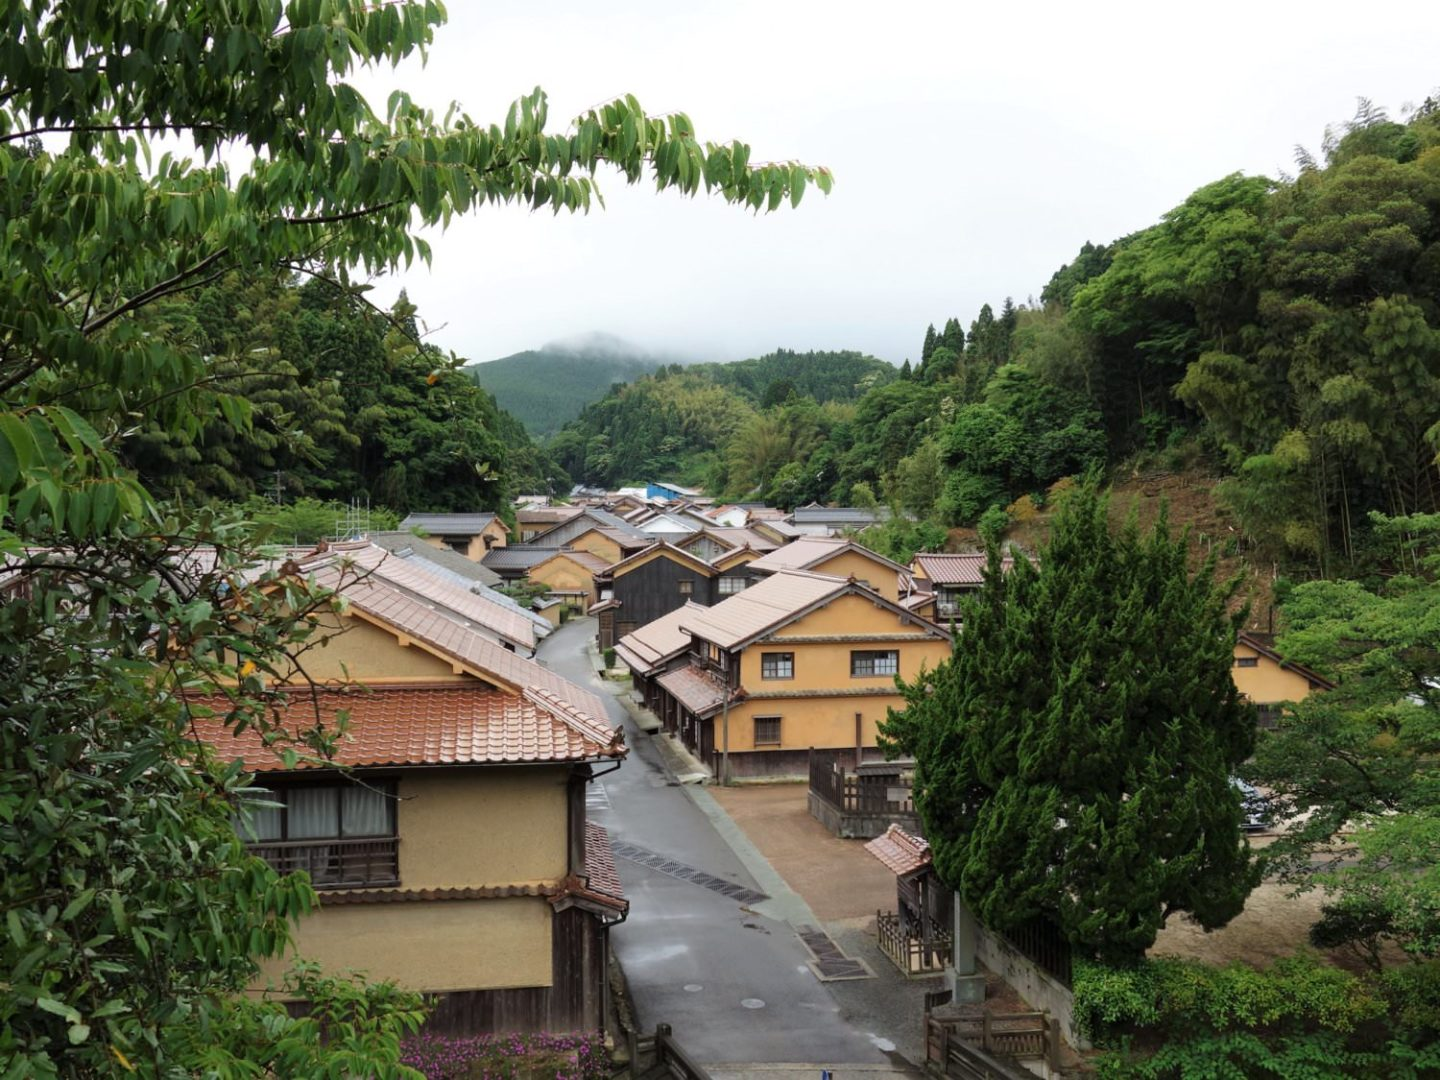 View of Omori district from Kanzeonji Temple